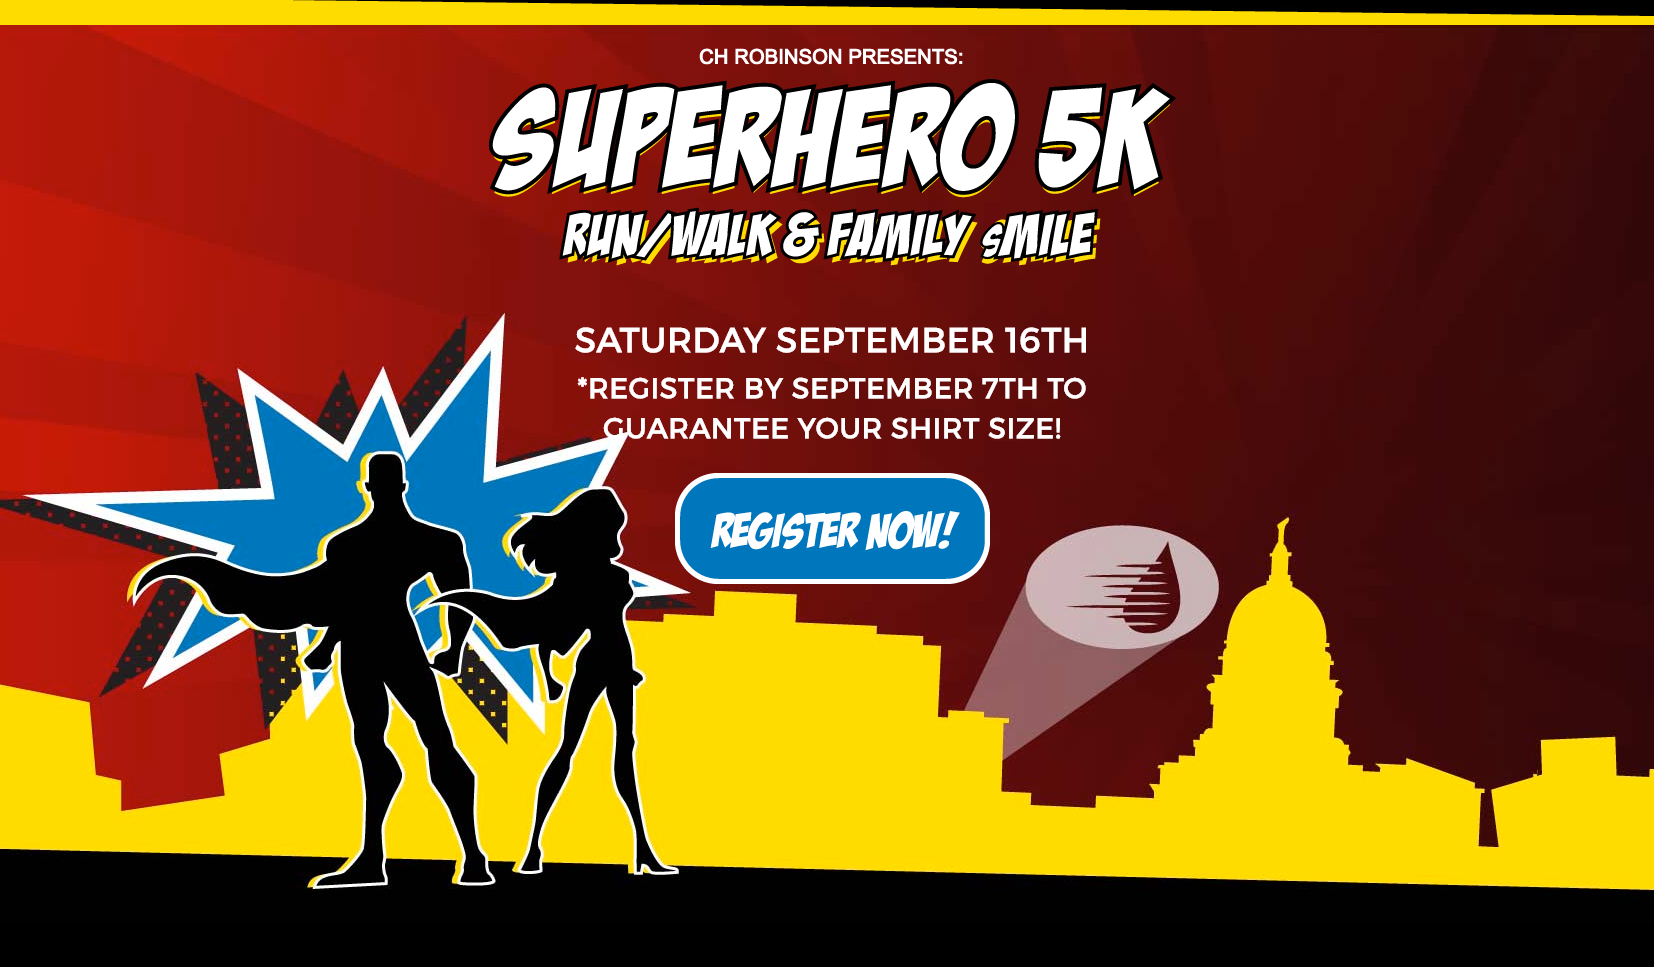 Please come and cheer on the SUPERHEROS! -